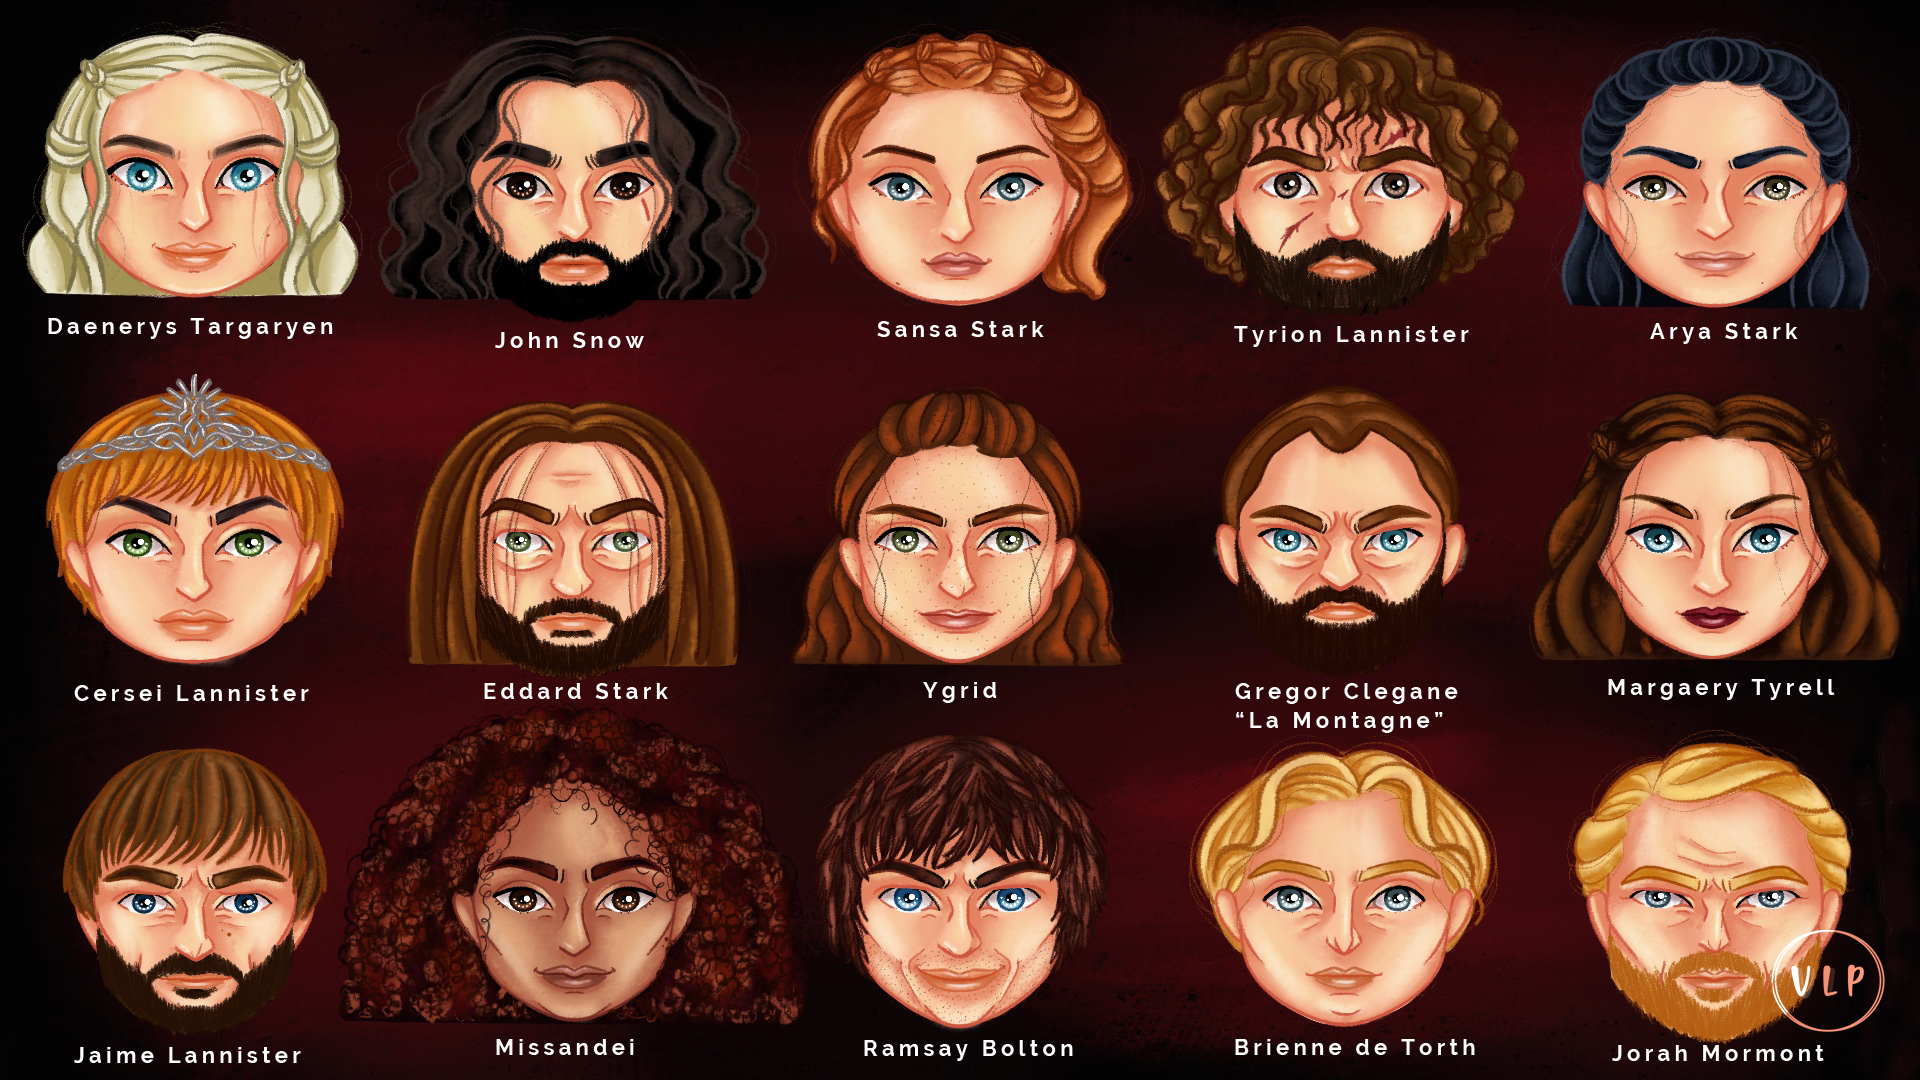 GAMES OF THRONES Name